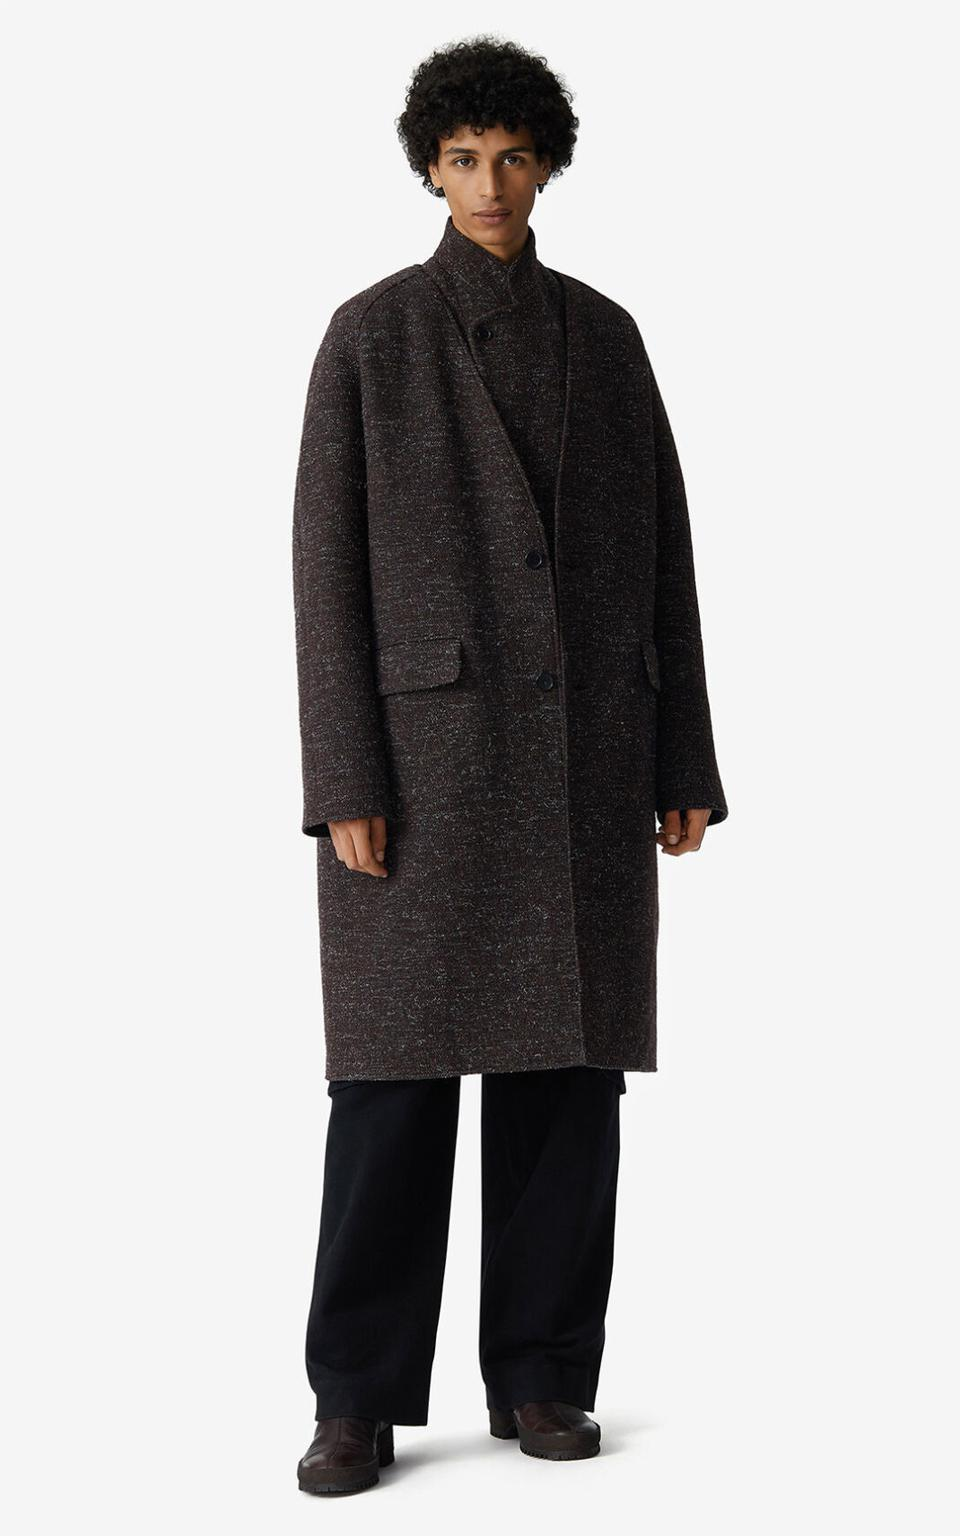 KENZO FW20 Runway Reversible 2-in-1 wool blend coat